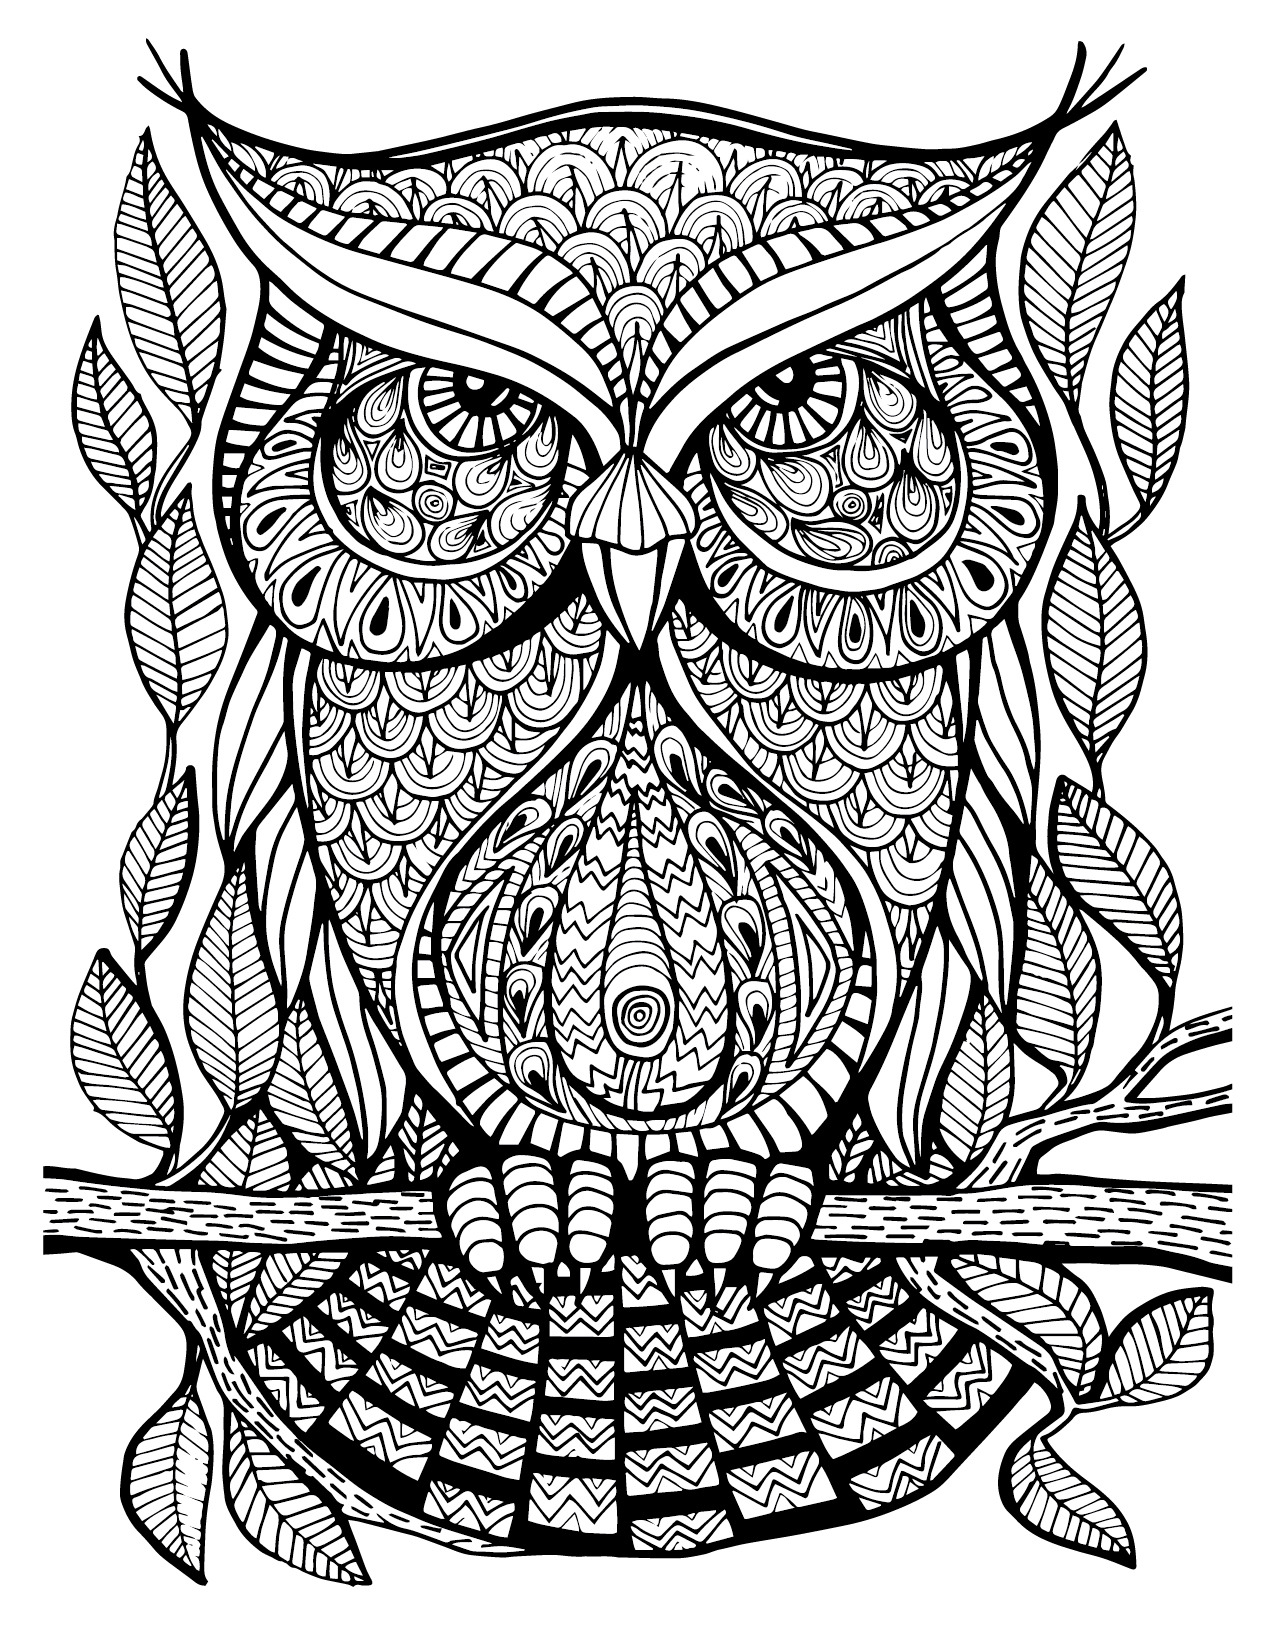 Coloring pages tumblr - Coloring Pages For Adults Tumblr 18